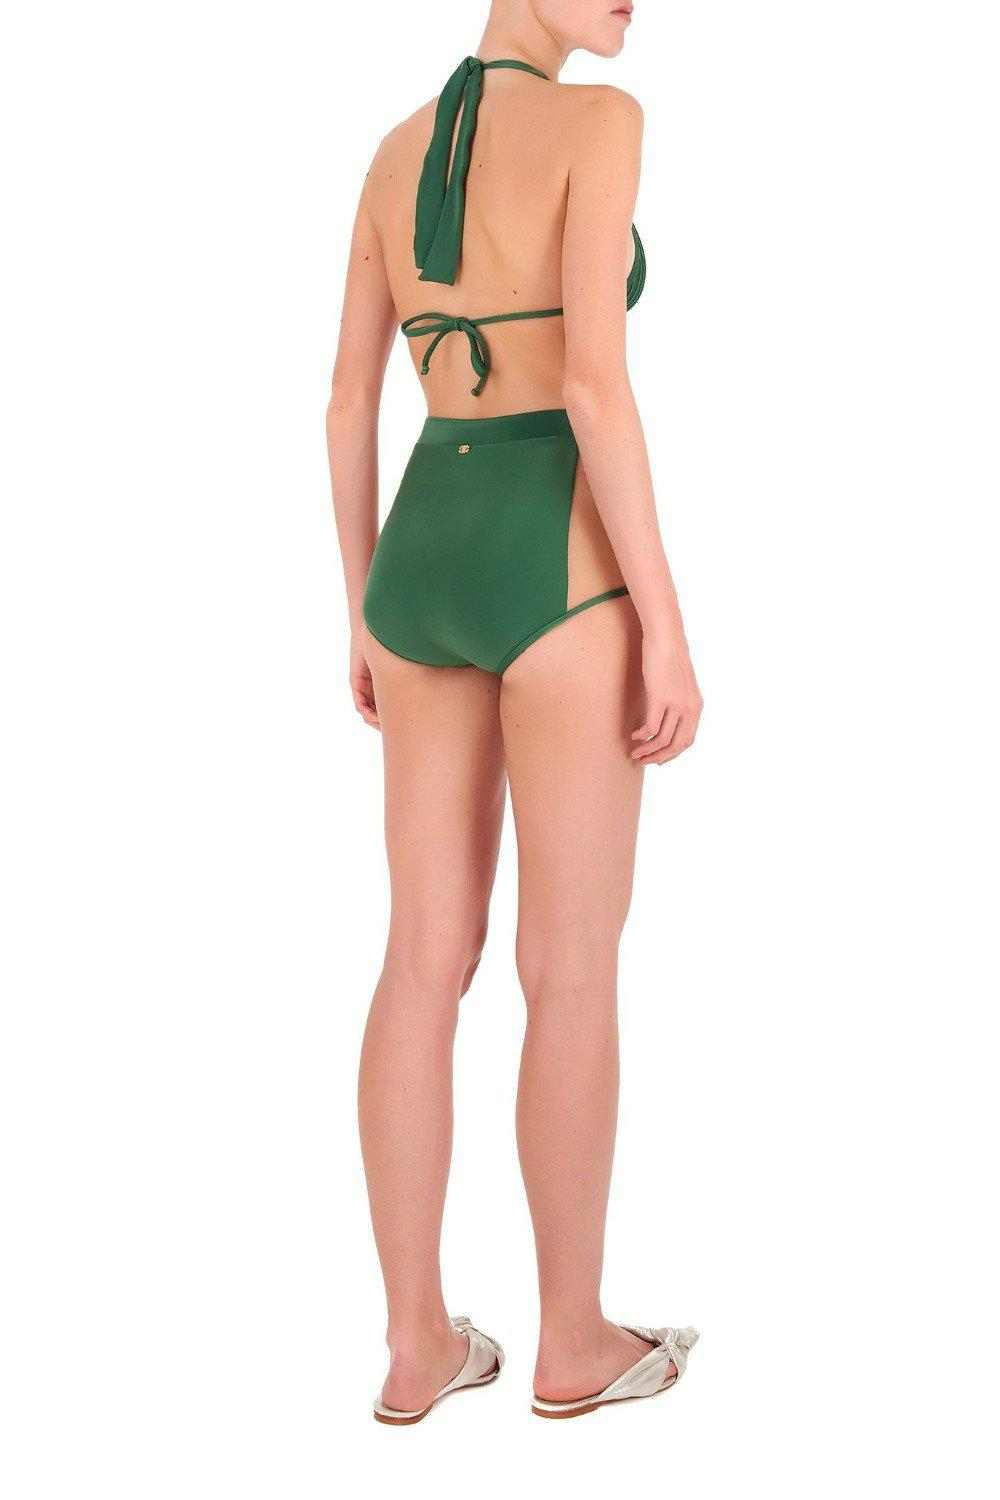 Fiore Solid Hot Pants Bikini with Tulle 1